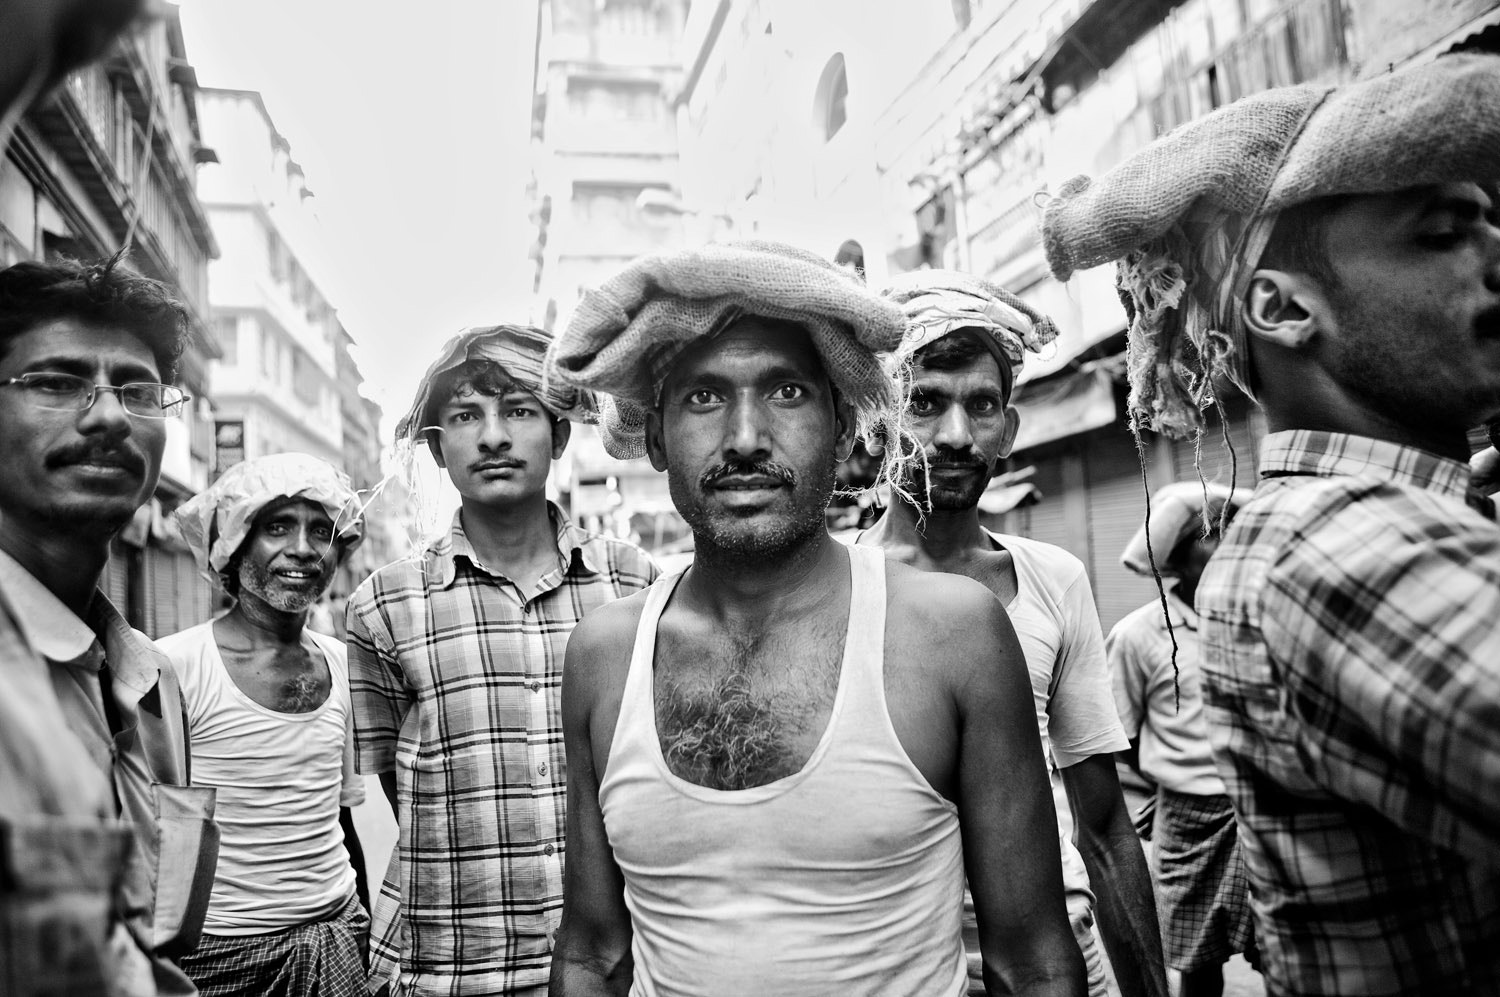 Photograph workers, calcutta by Ian Taylor on 500px